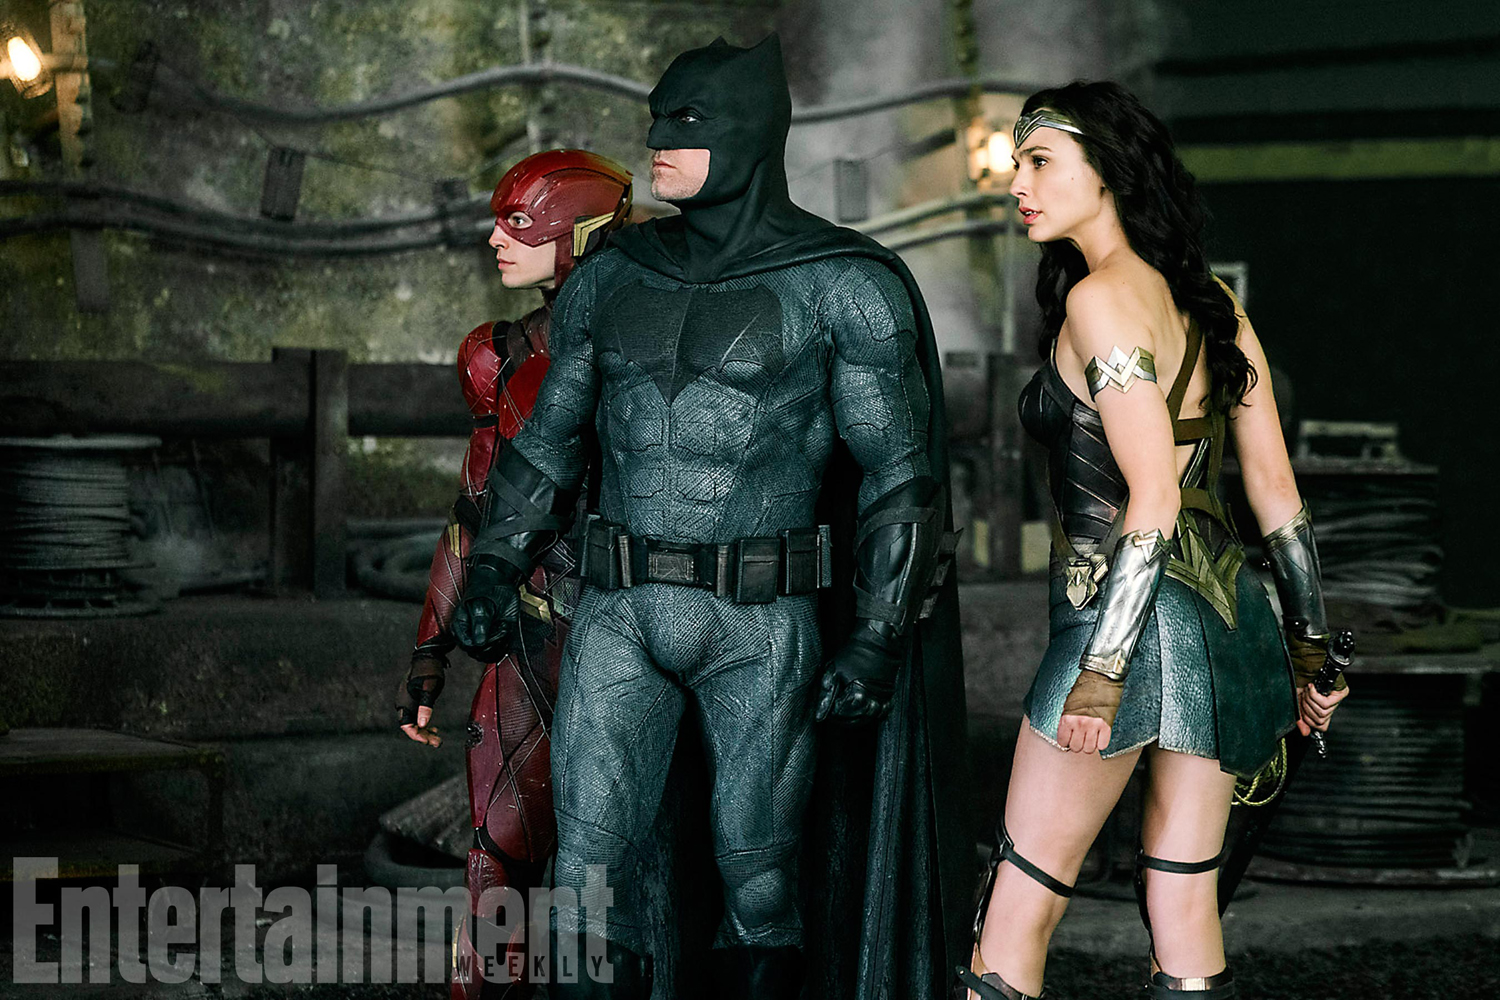 The new Justice League photo featuring Batman, Wonder Woman and the Flash